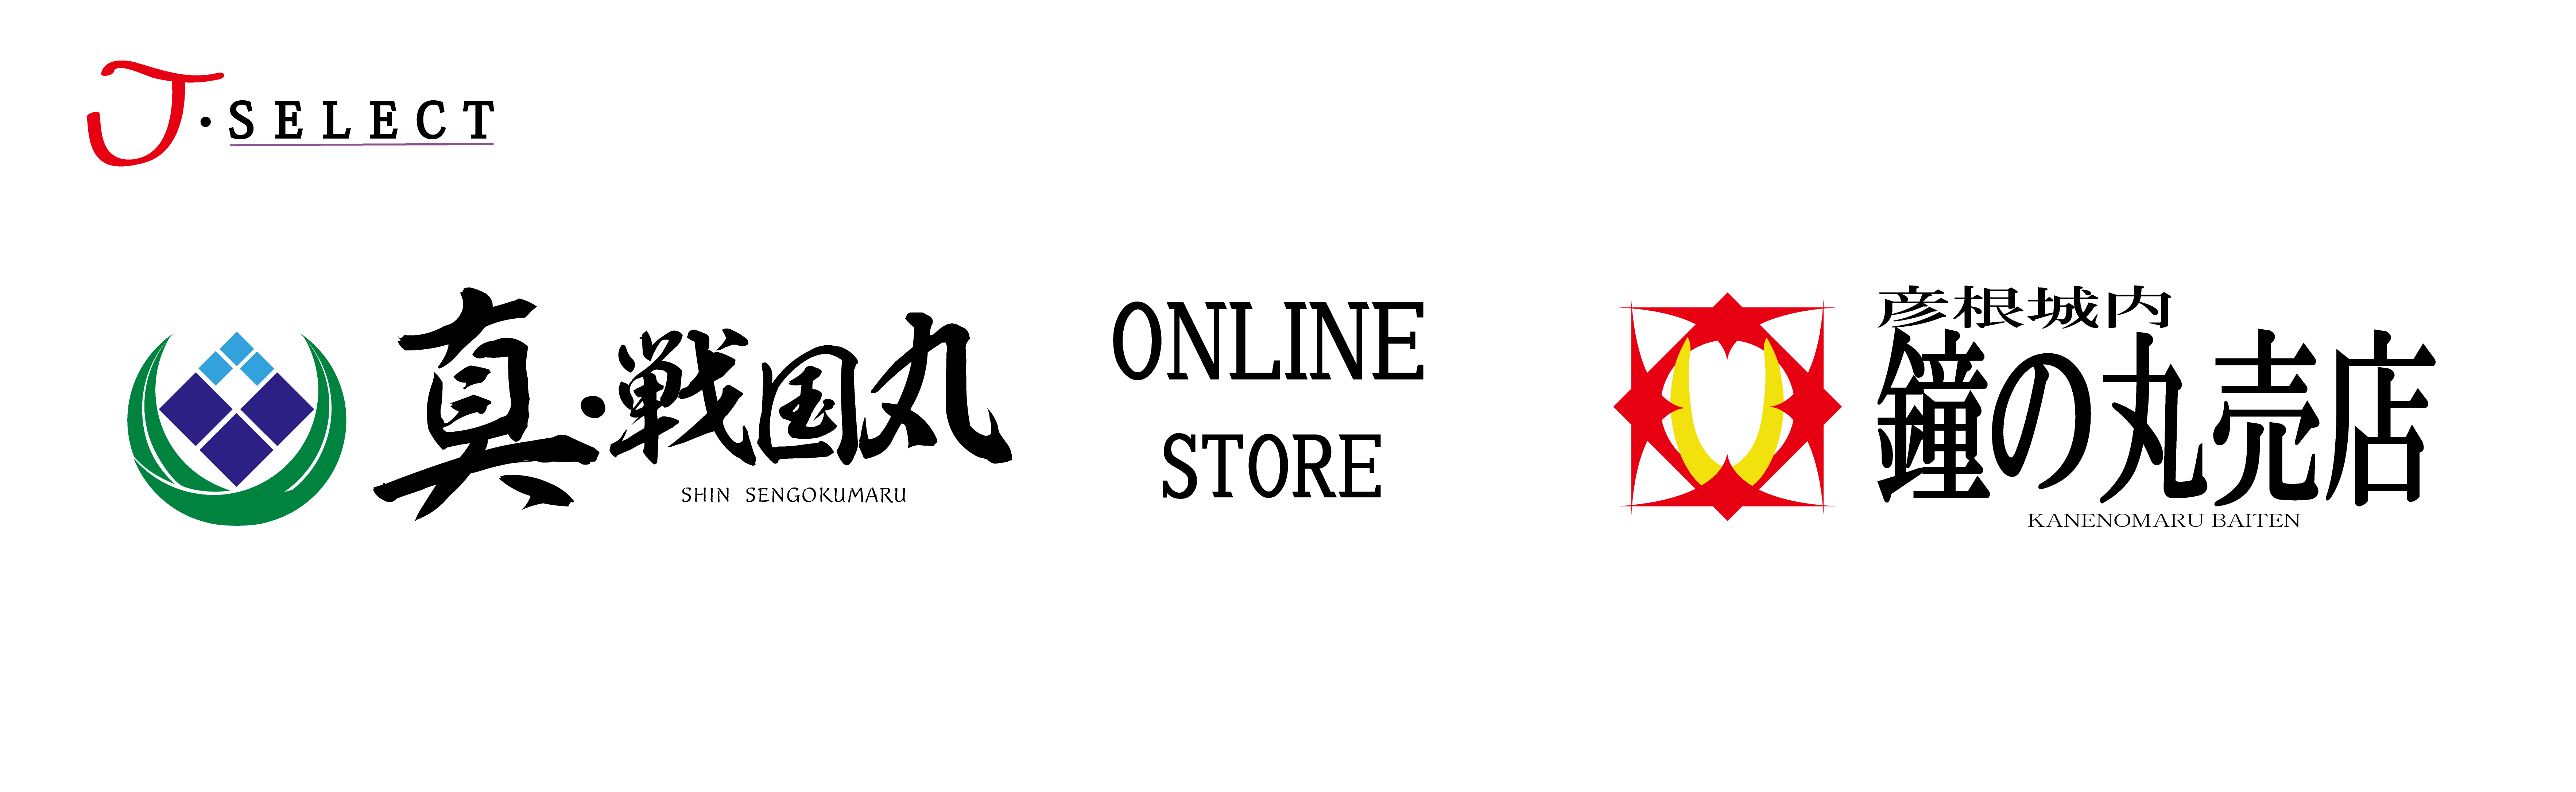 J-SELECT ONLINE STORE